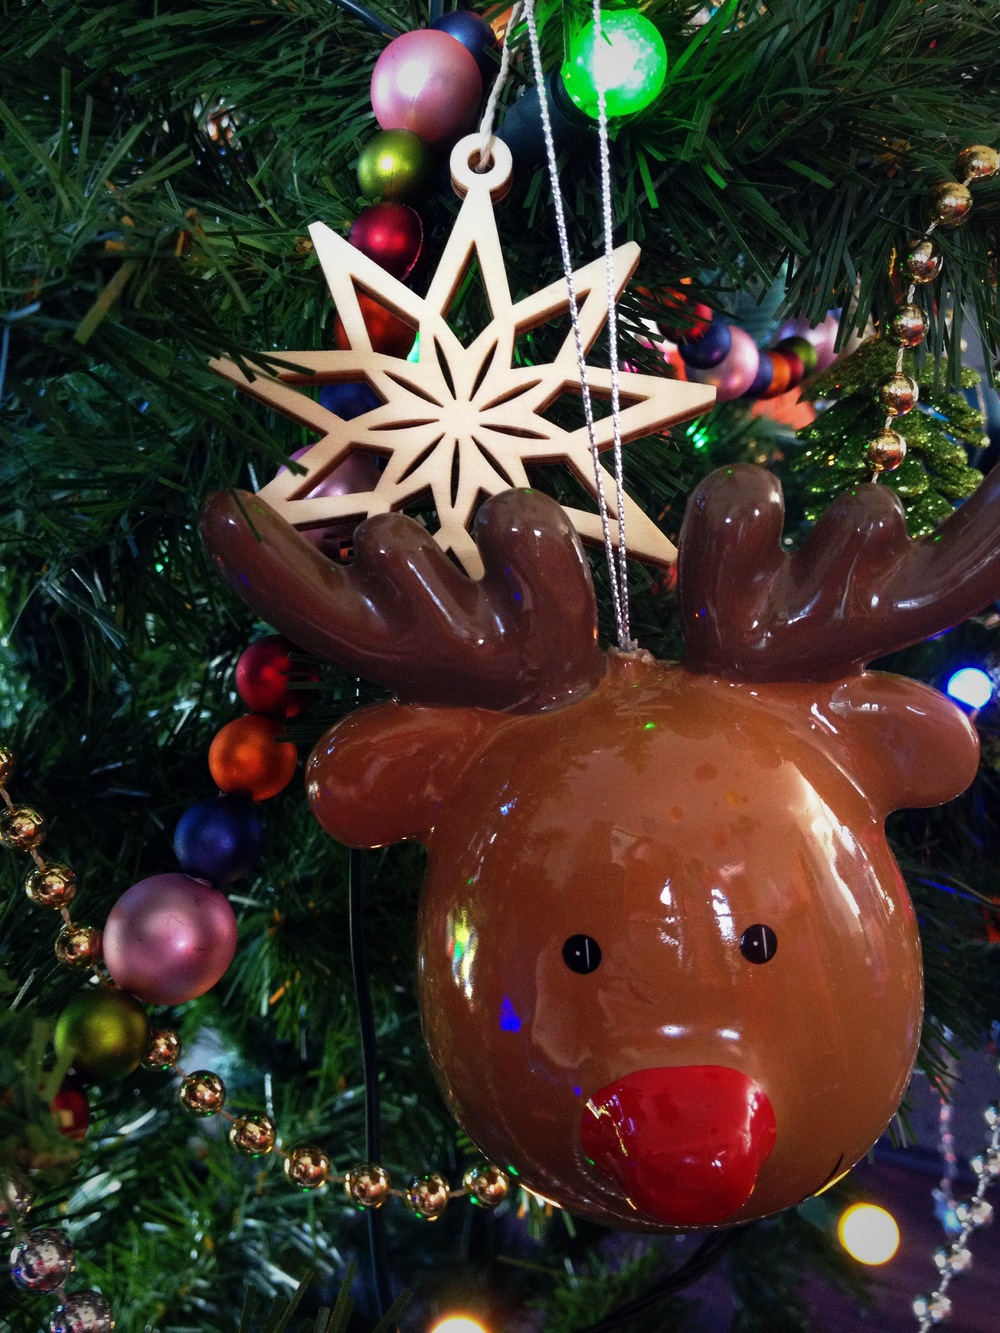 A Scandi precision cut wooden snowflake, next to a plastic Rudolph. Anarchy!